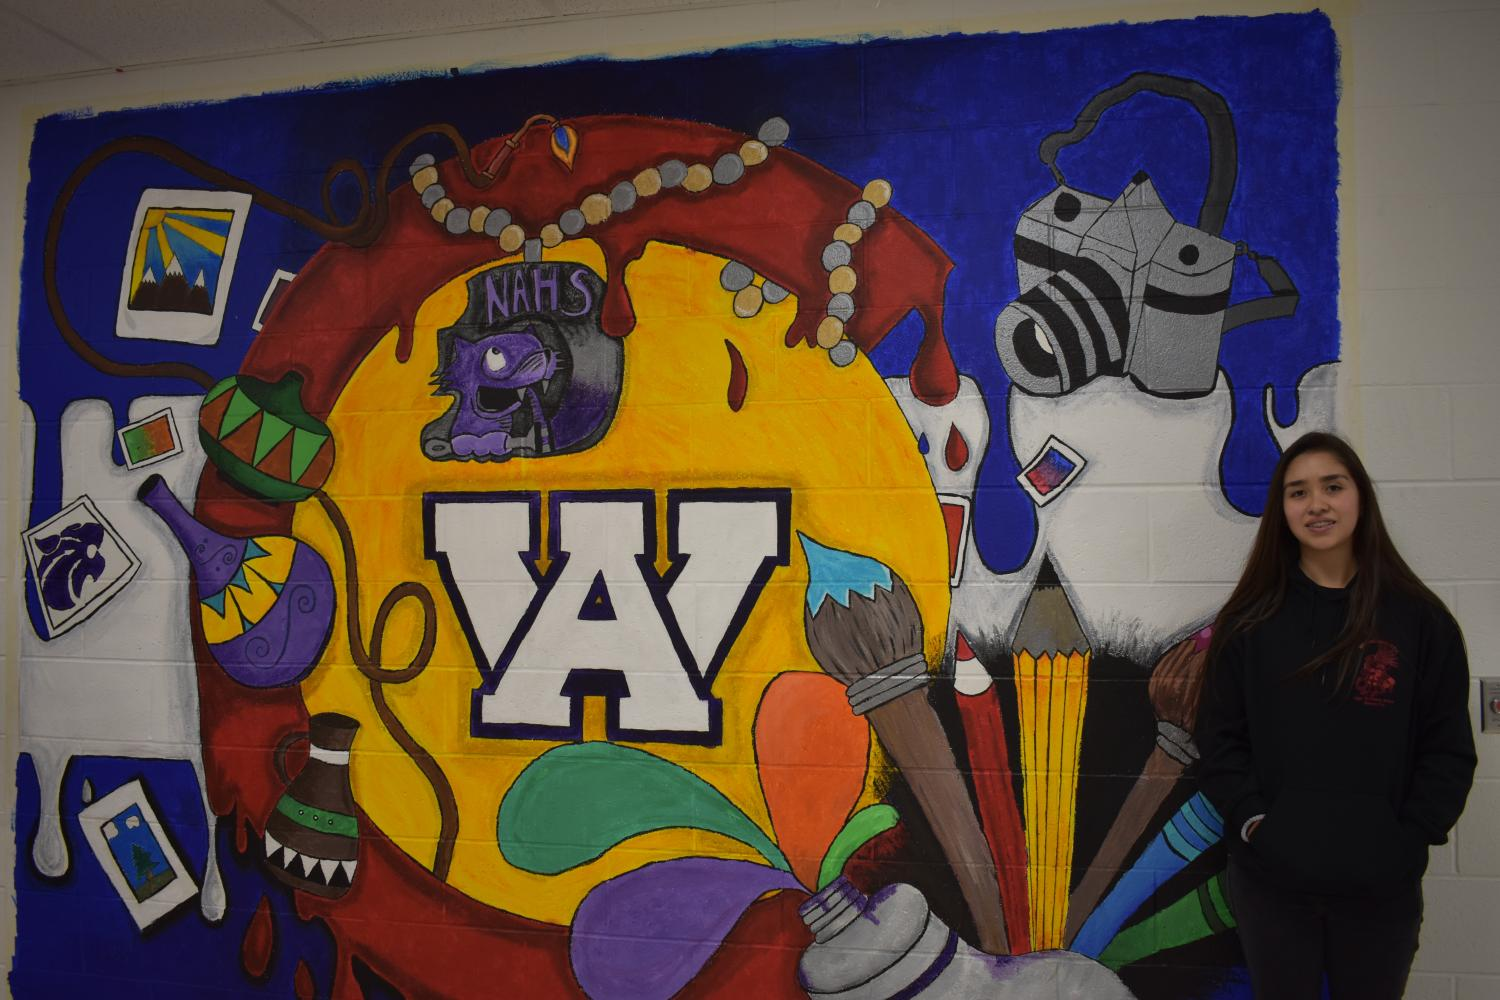 Larysa Medina, sophomore, stands in front of the mural that she designed with National Art Honors Society.